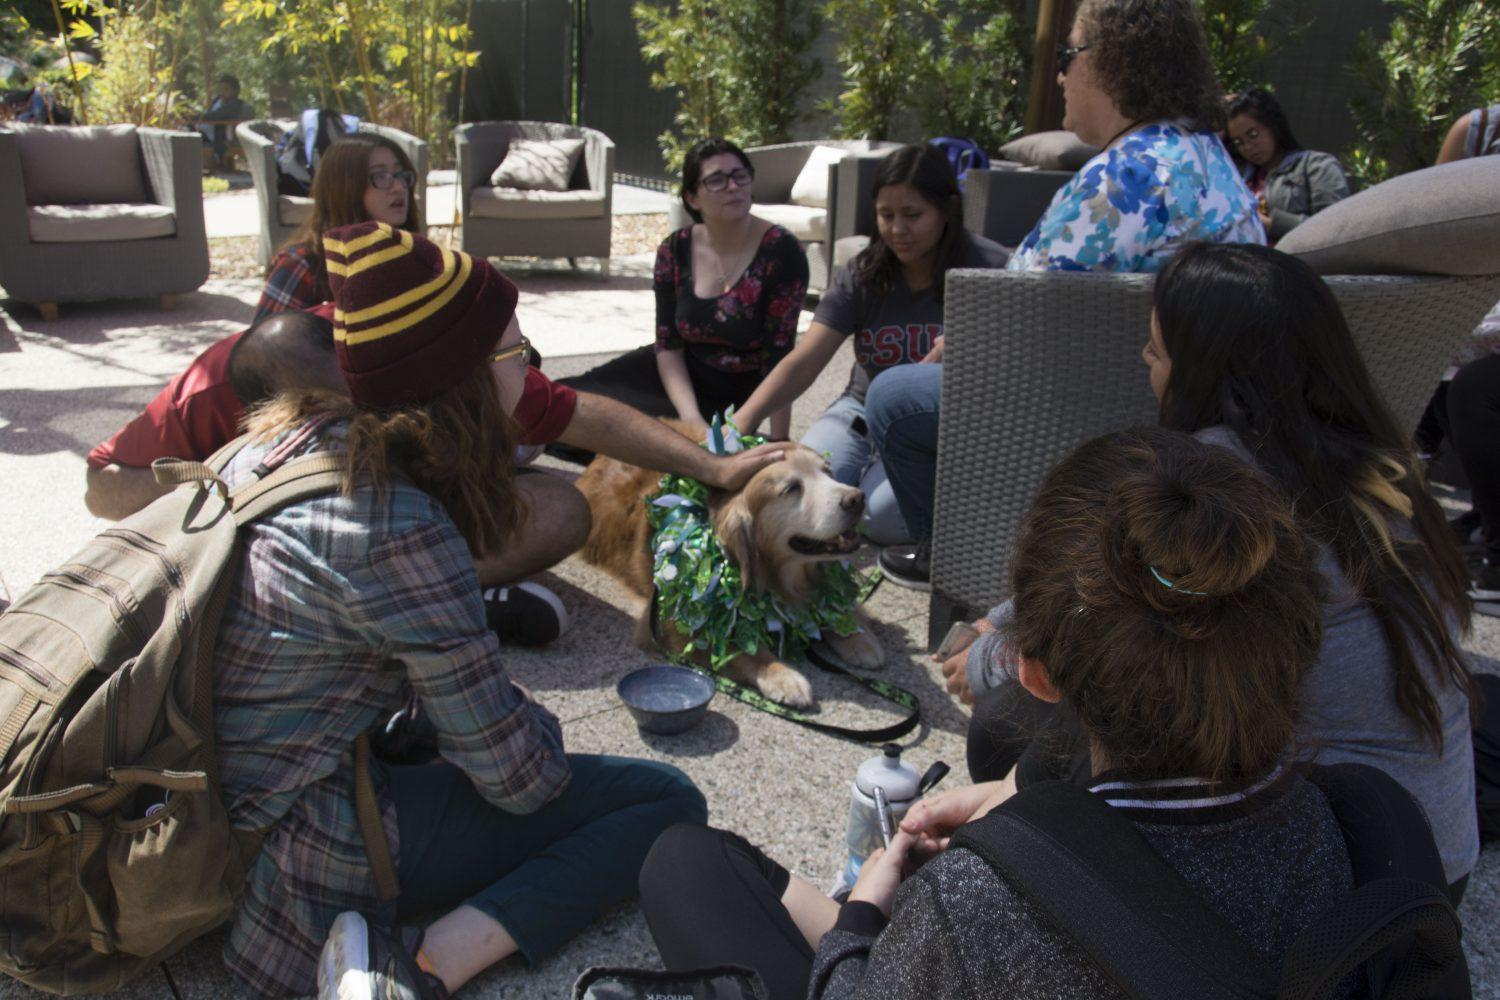 CSUN+students+gather+around+Hank%2C+a+10+year-old+golden+retriever%2C+brought+to+campus+by+owner+Beverly+Radloff+in+order+to+relax+students+for+their+upcoming+midterms.+Photo+credit%3A+Nicollette+Ashtiani